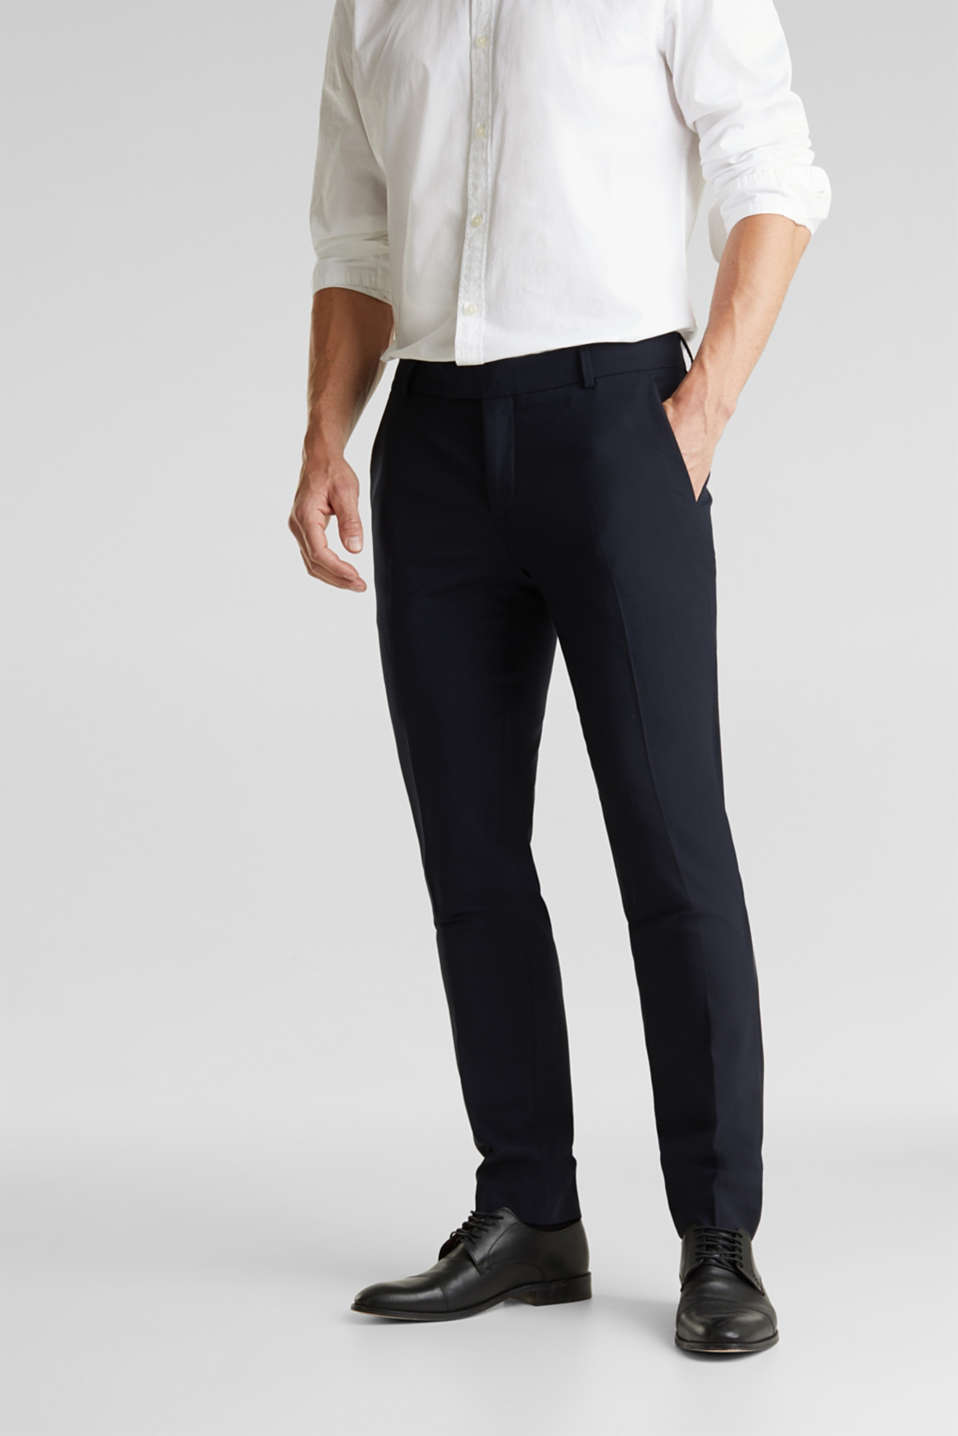 Esprit - ACTIVE SUIT BLACK trousers made of blended wool